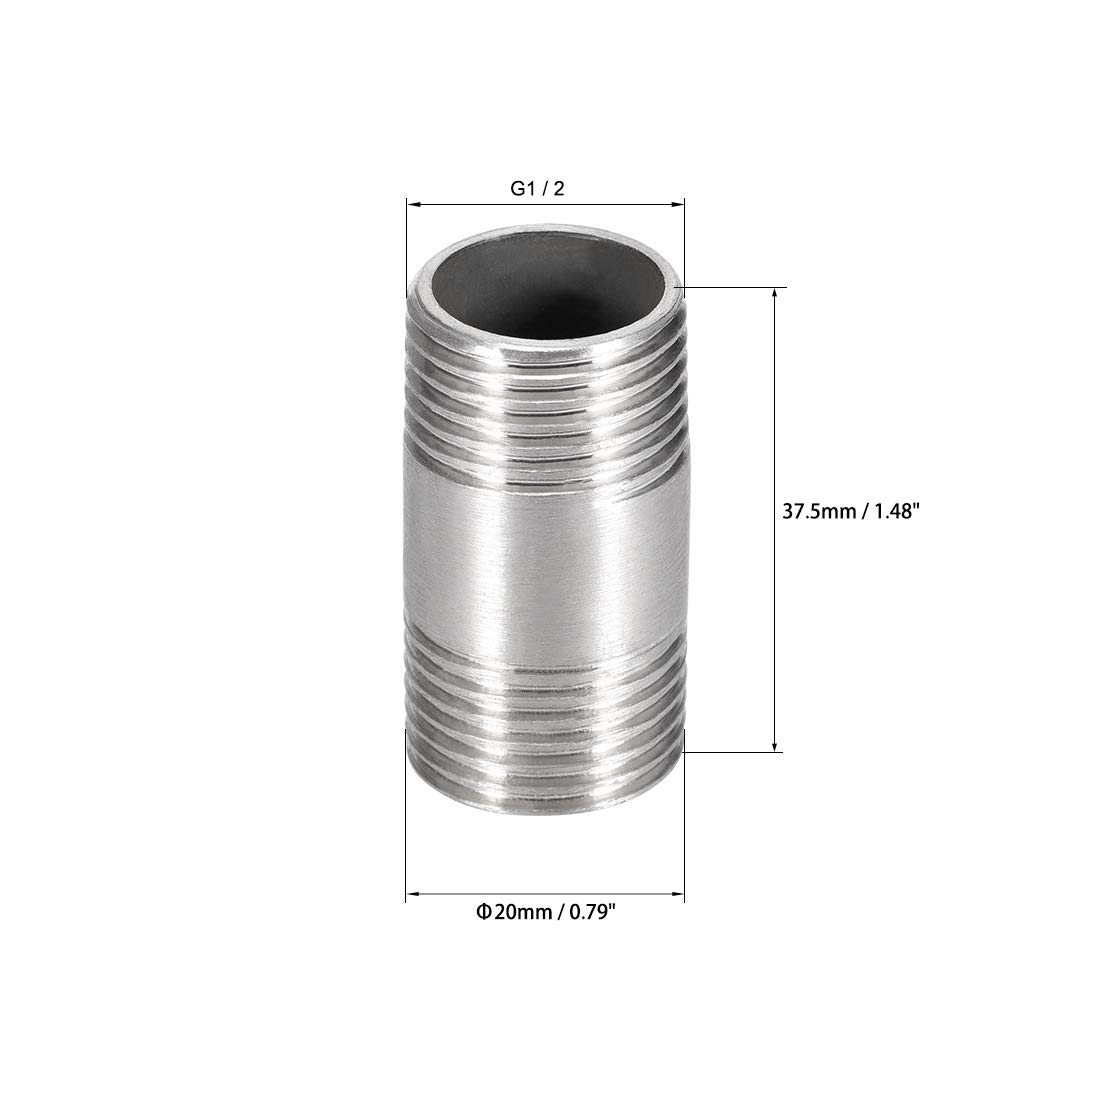 Stainless Steel 304 Cast Pipe Fittings Coupling Fitting 1//2 x 1//2 G Male 3pcs